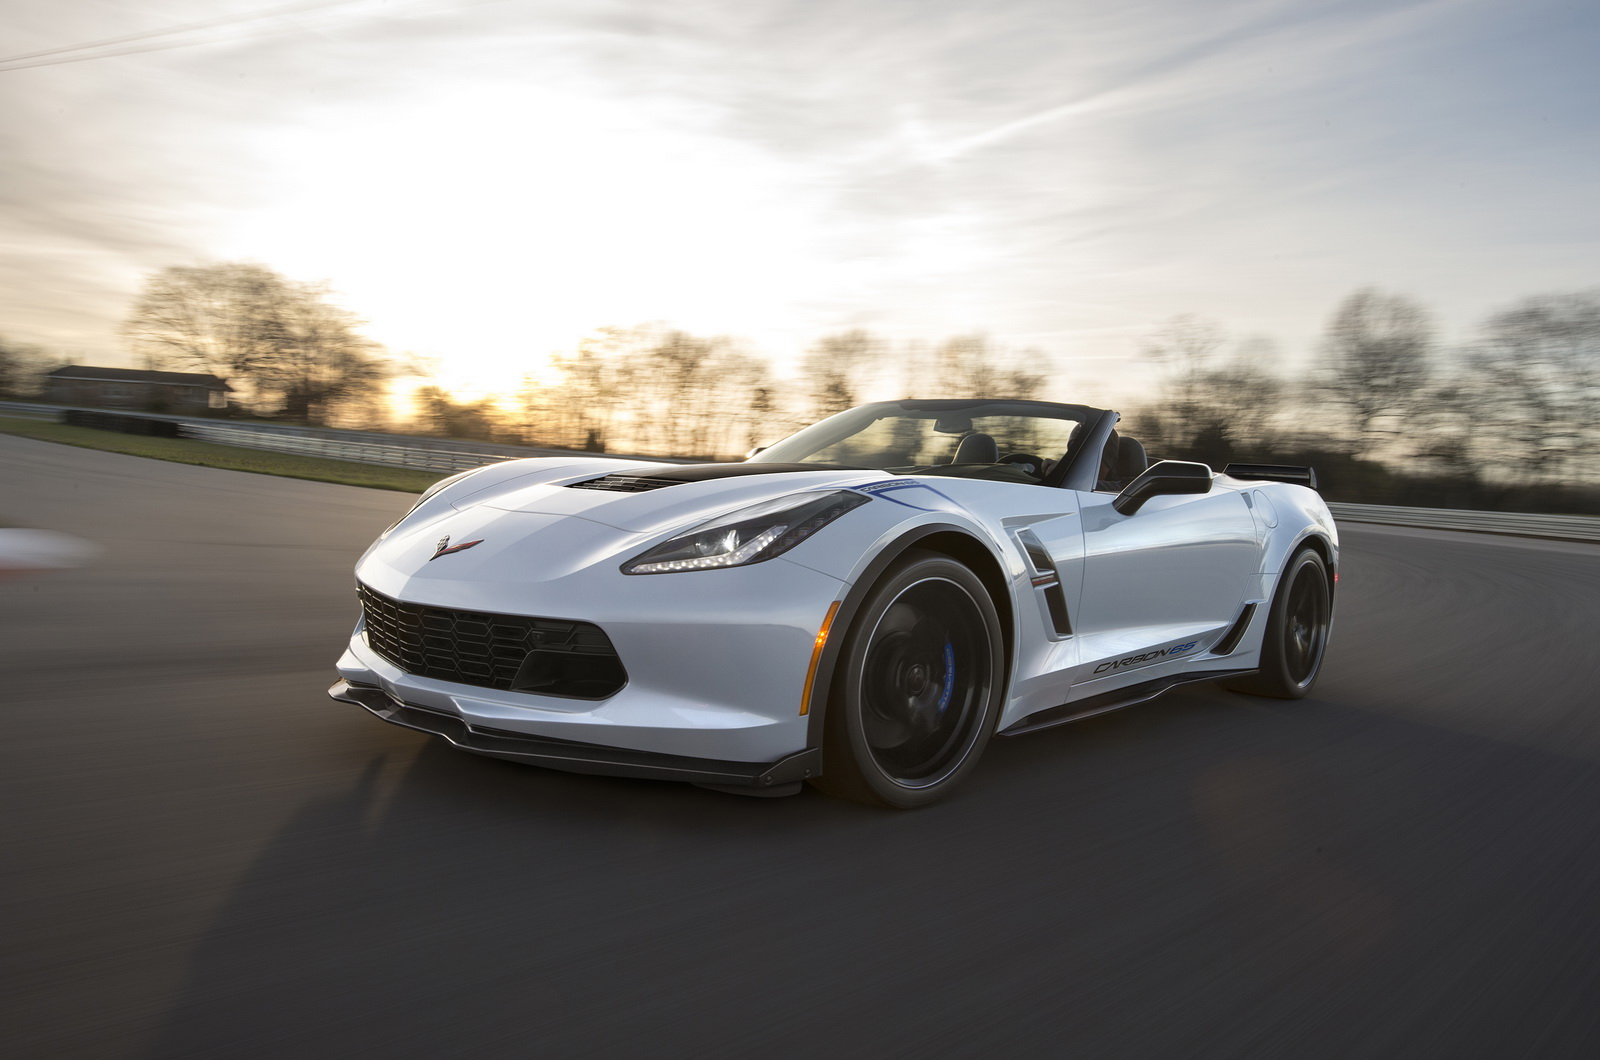 chevrolet-corvette-carbon-65-edition